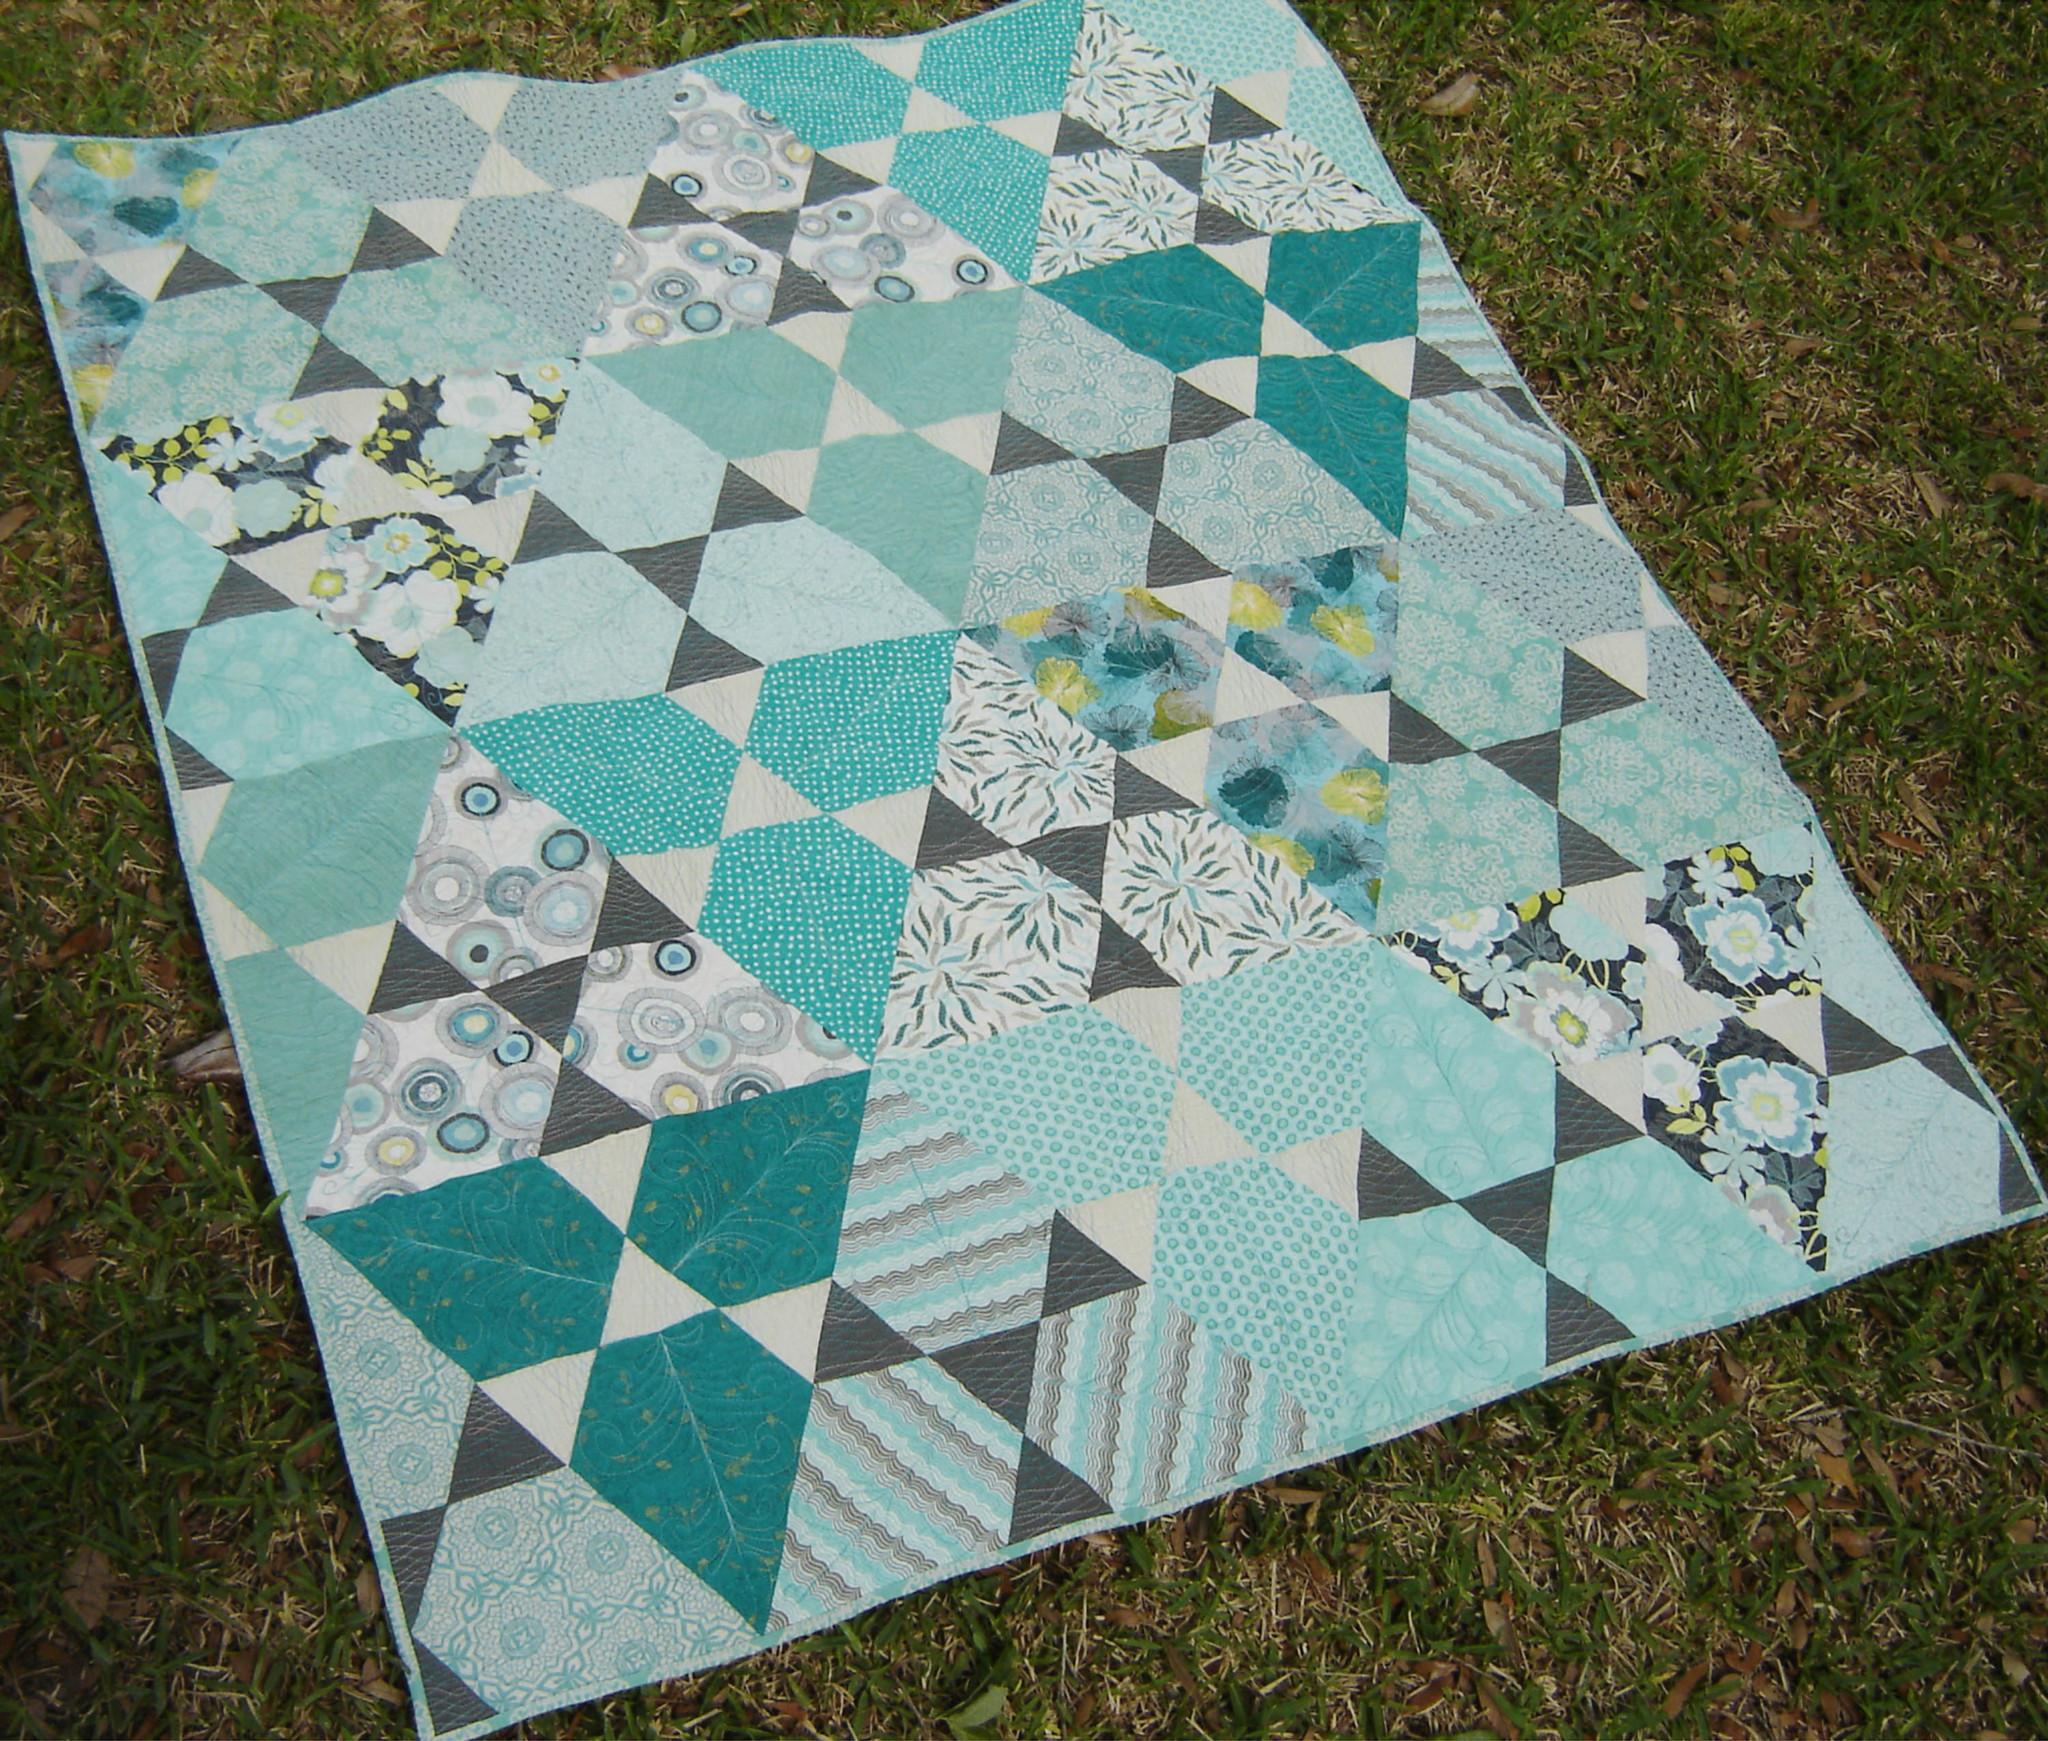 Jaybird Pattern Review Lotus Sew Sweetness Desperate quilters   online fabric store featuring high quality quilt shop fabrics and notions. jaybird pattern review lotus sew